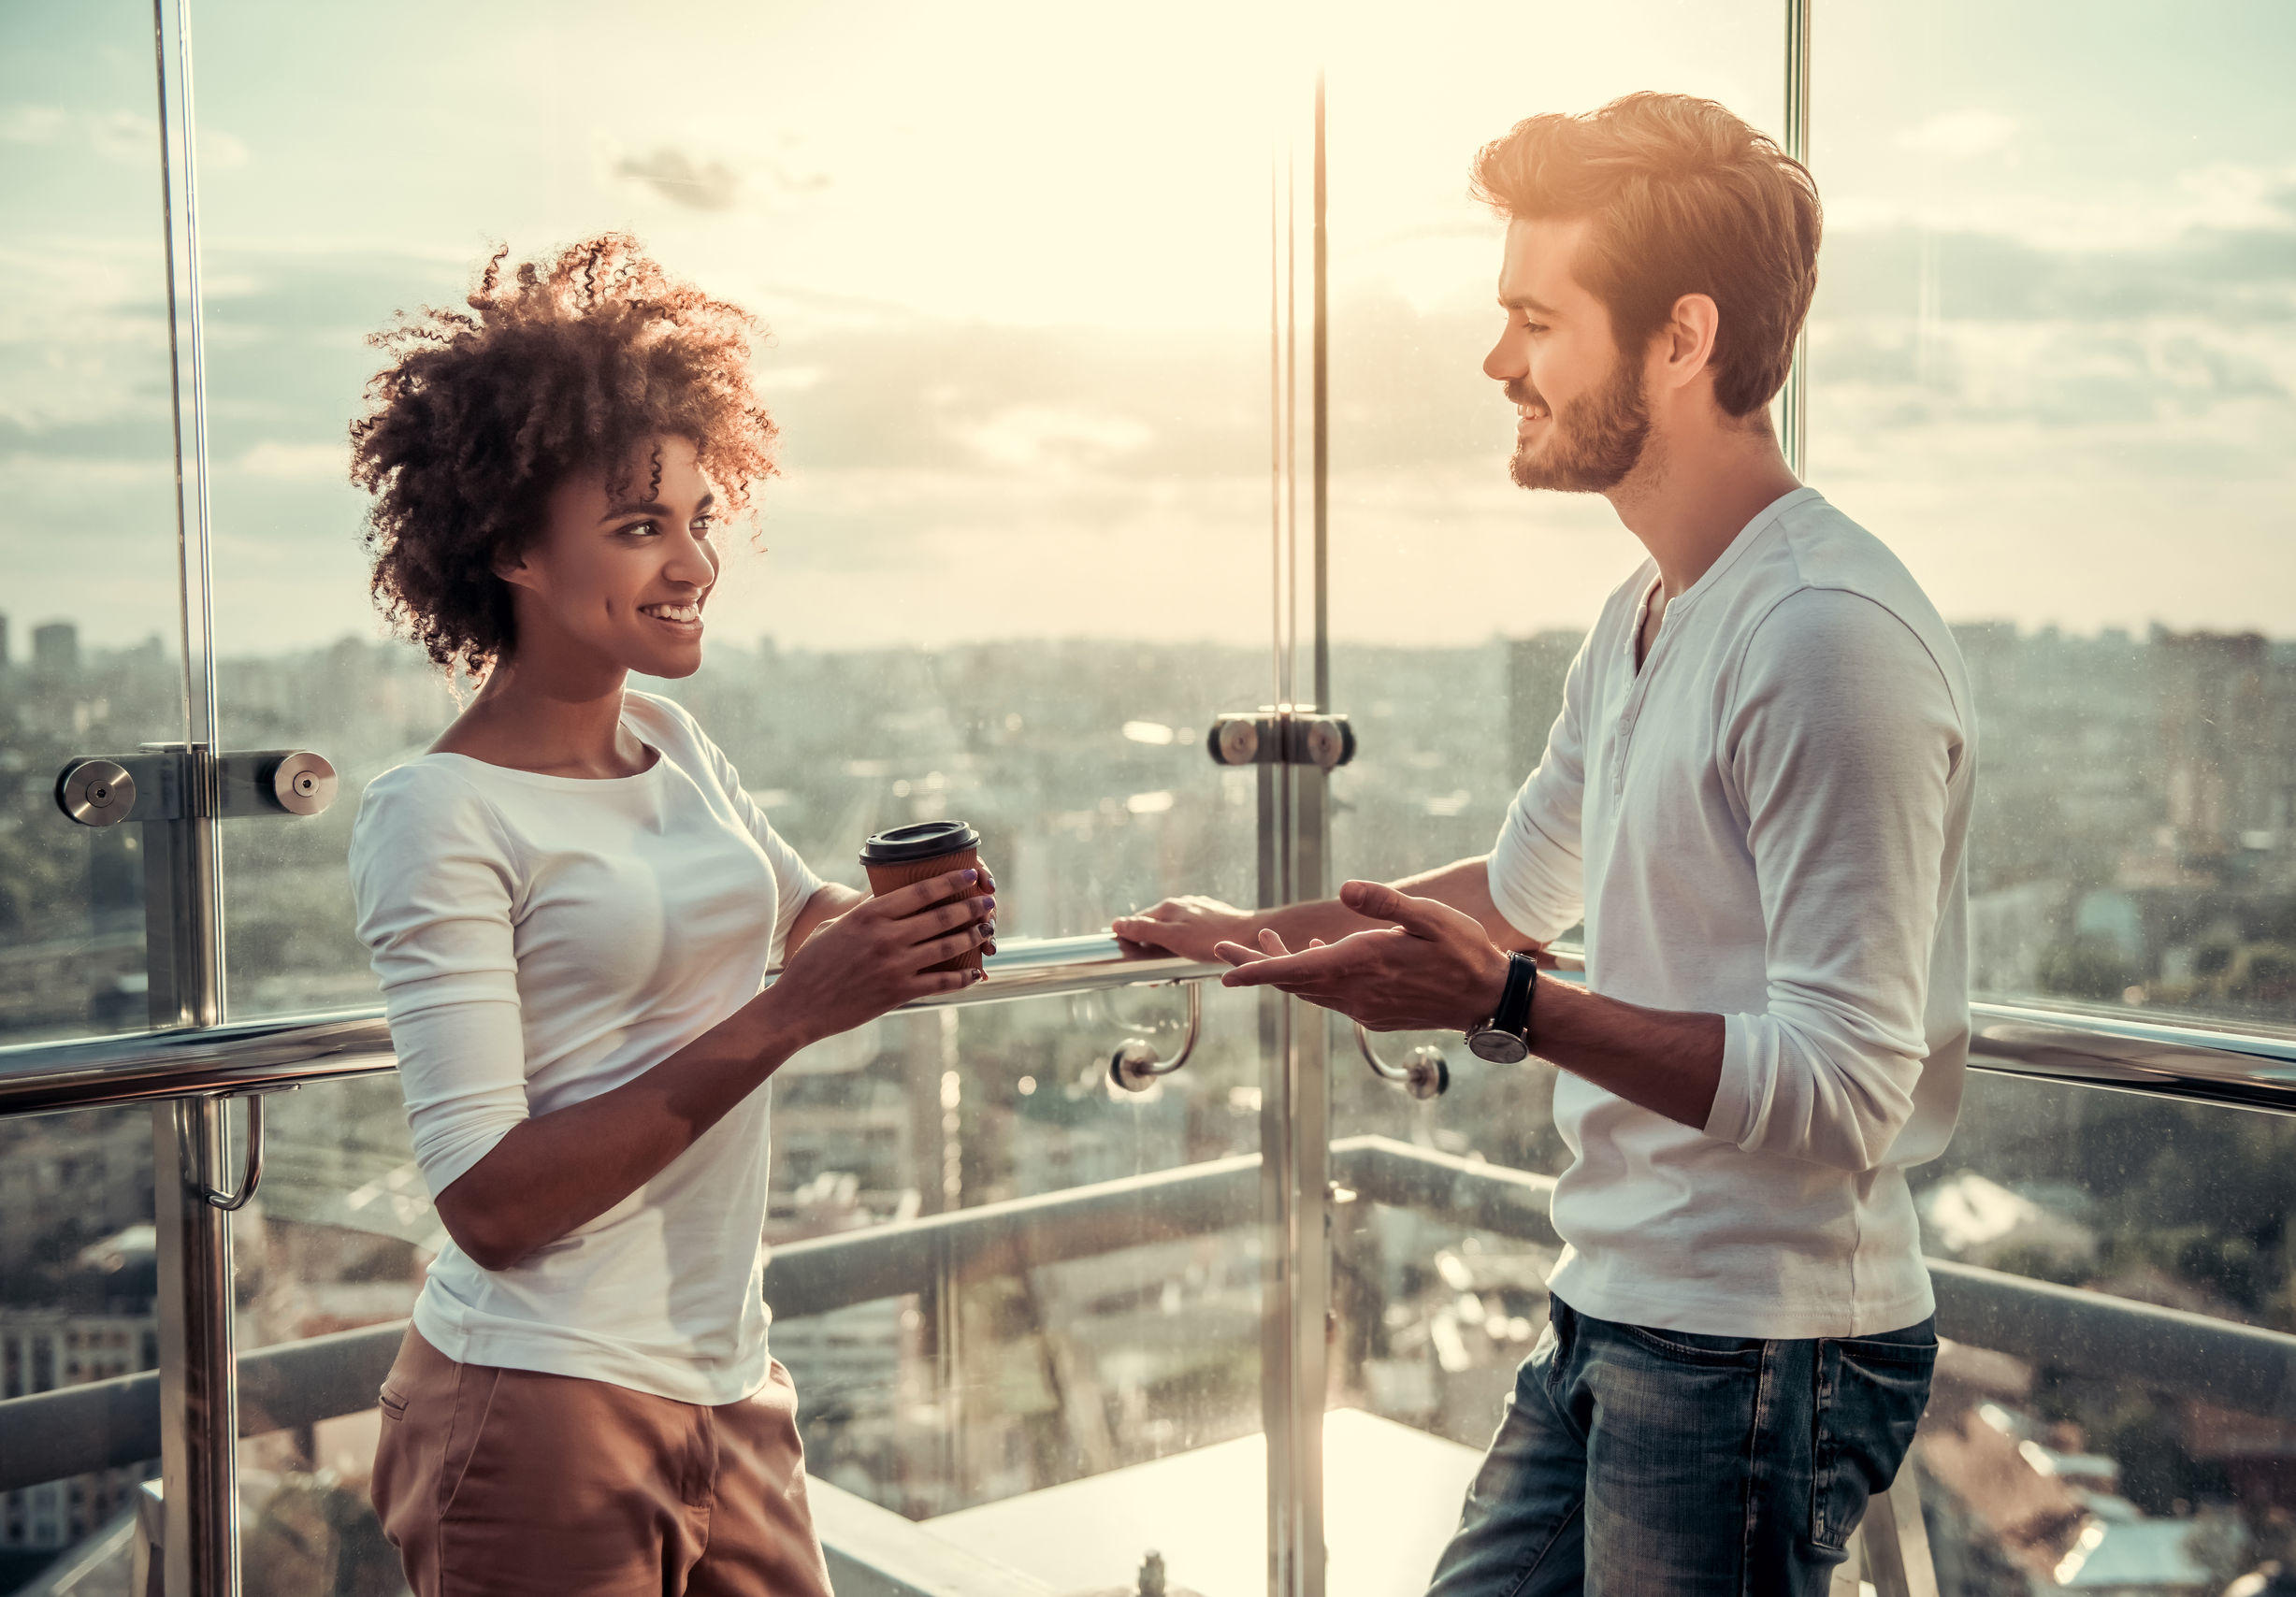 Rules on dating in the workplace